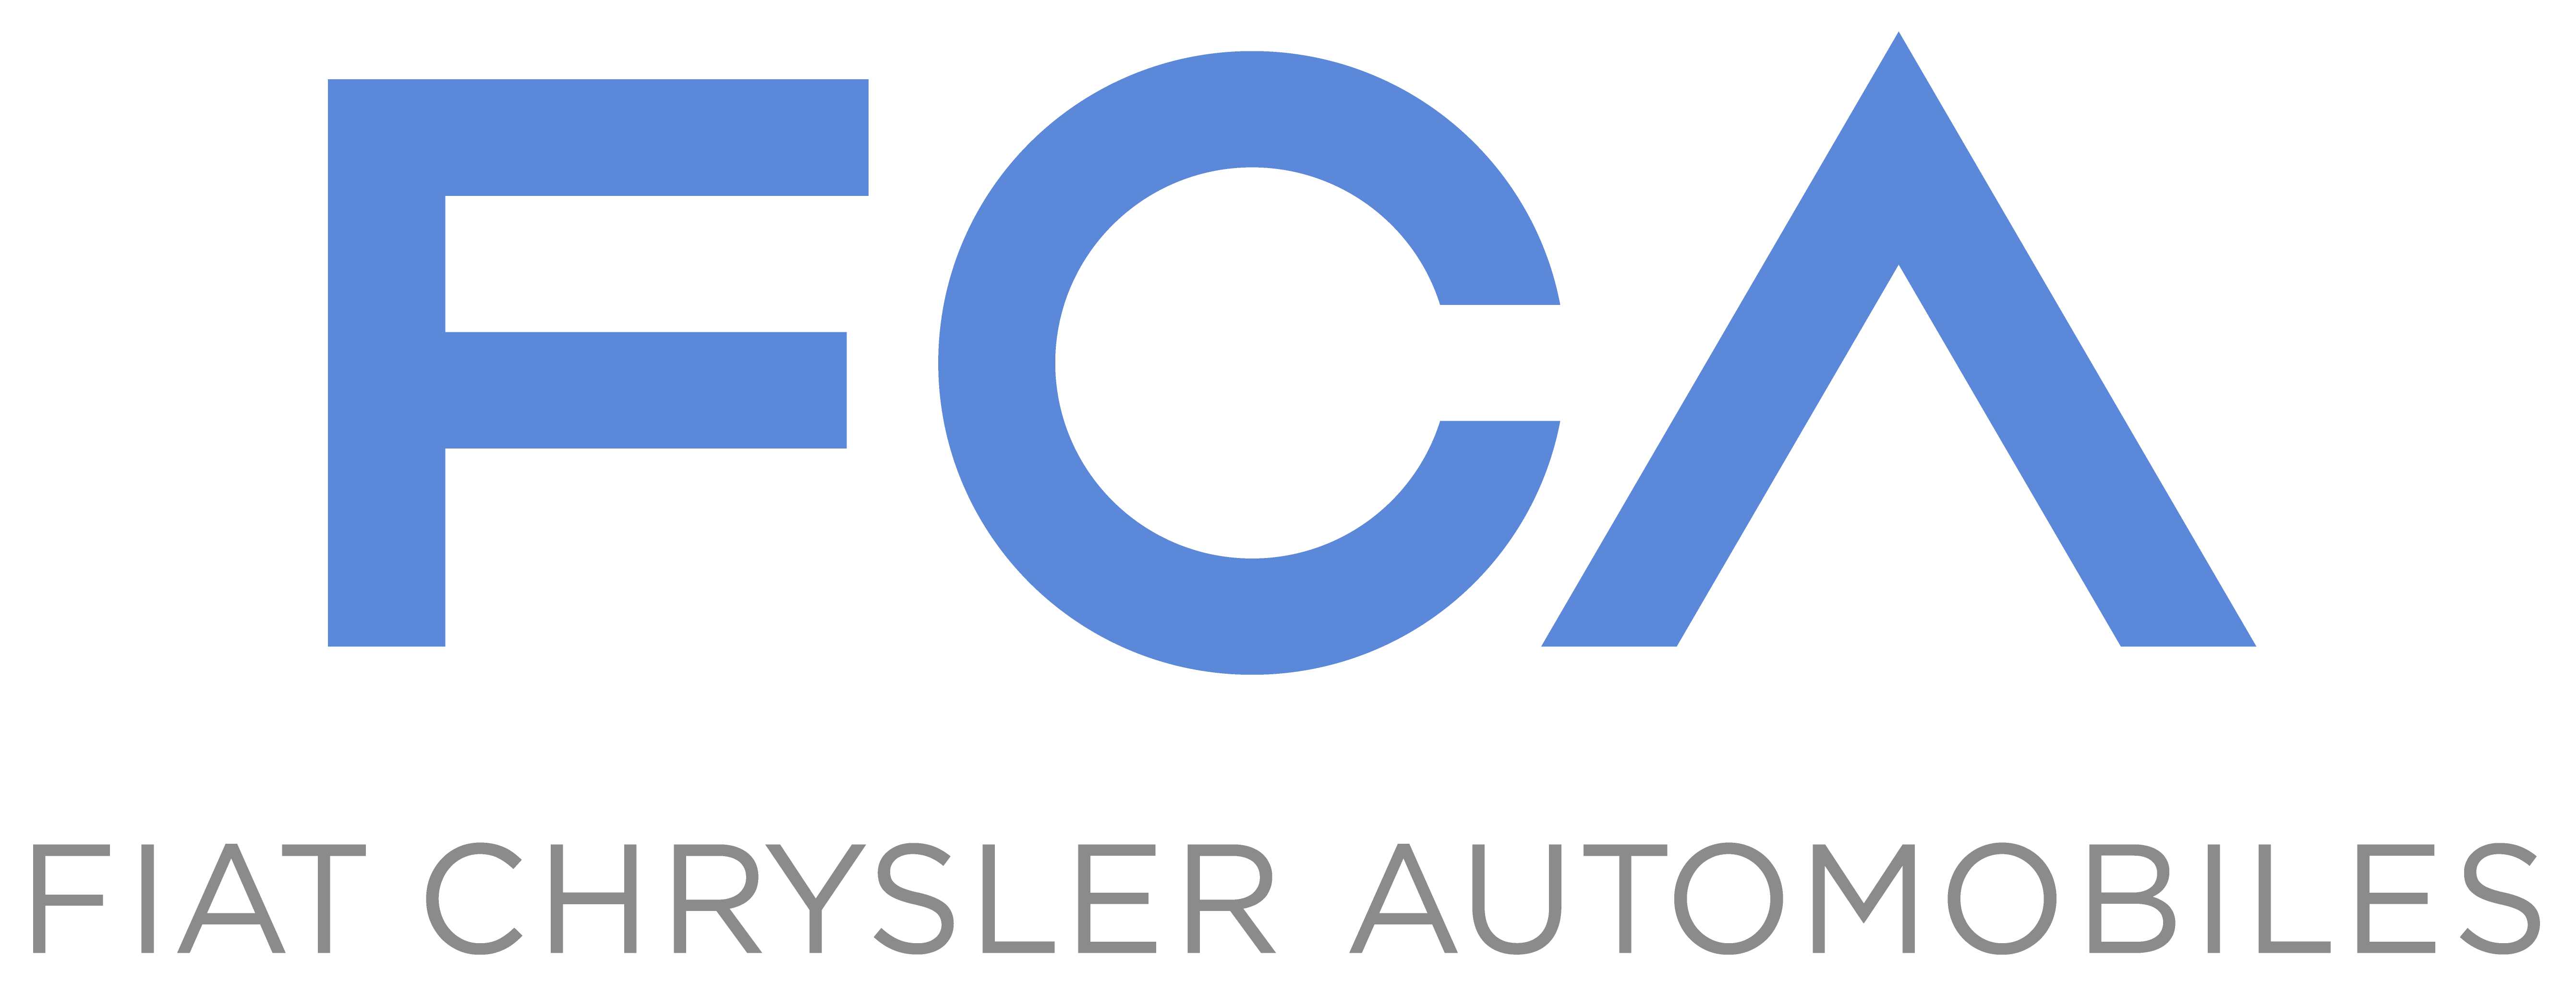 loading image for Fiat Chrysler Automobiles